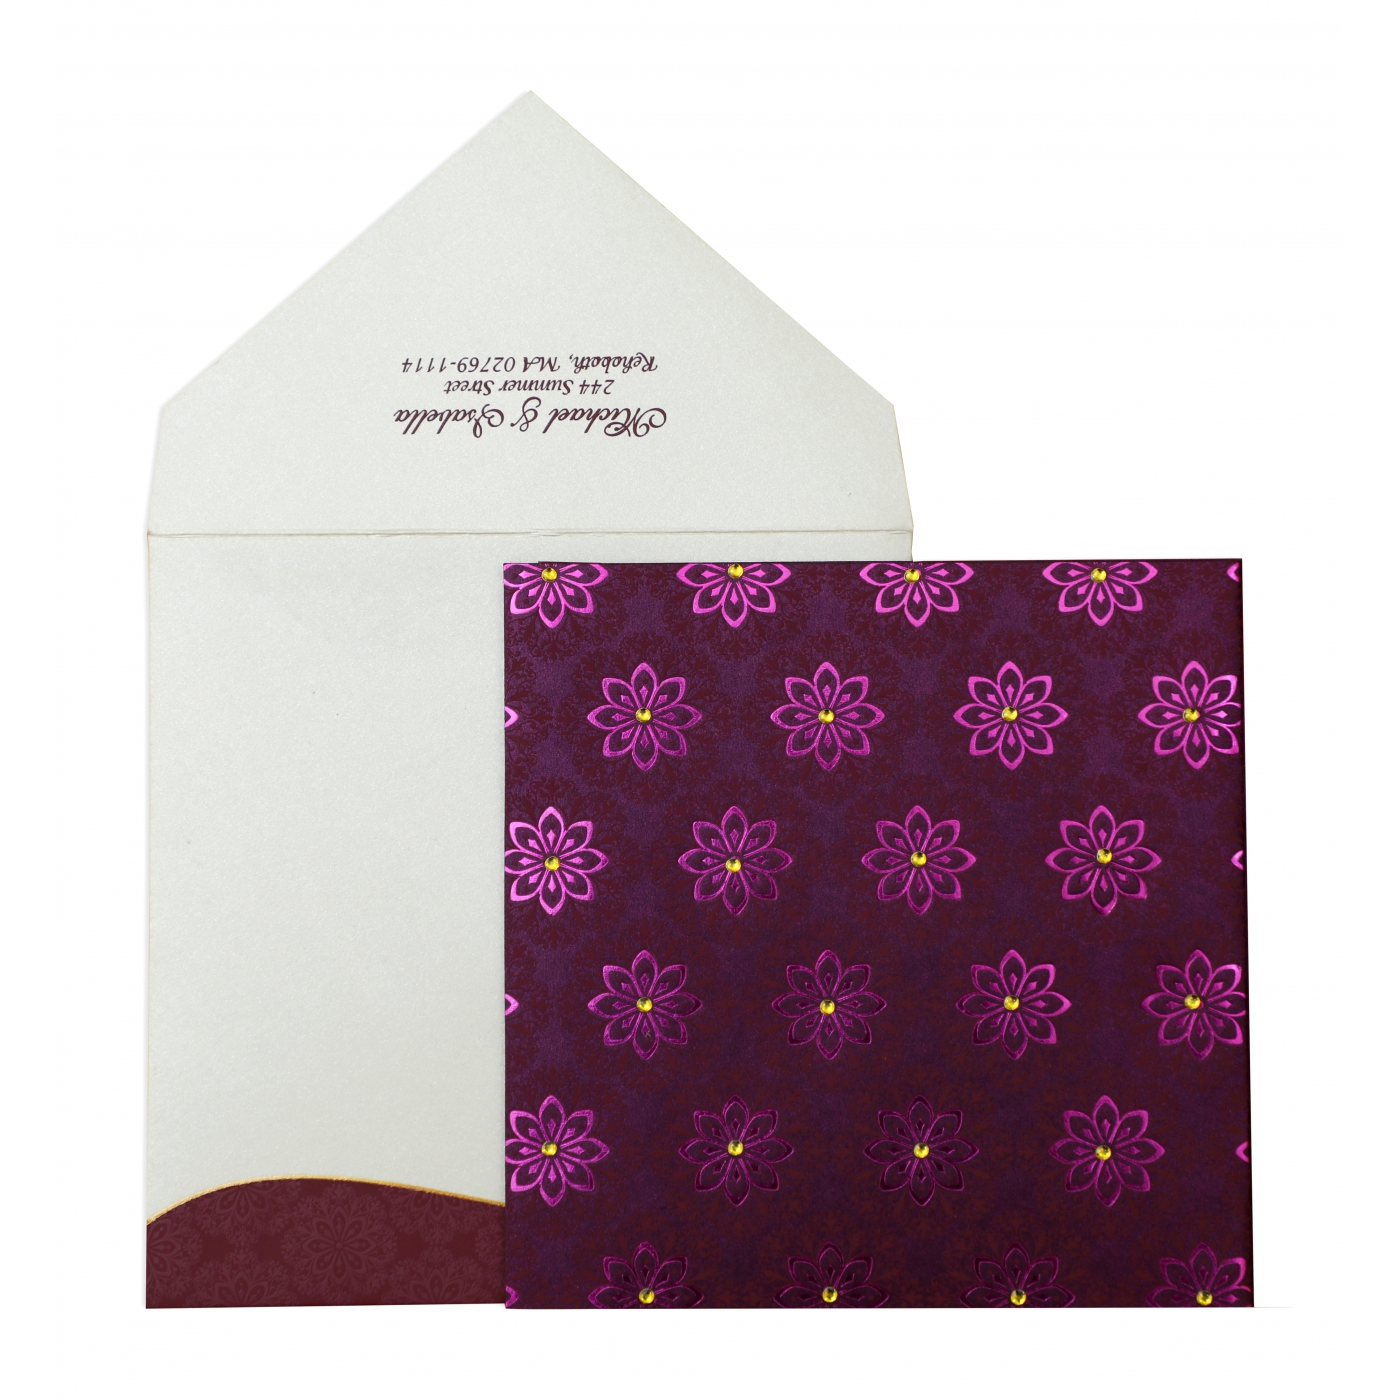 PURPLE SHIMMERY FLORAL THEMED - FOIL STAMPED WEDDING INVITATION : AD-837 - A2zWeddingCards